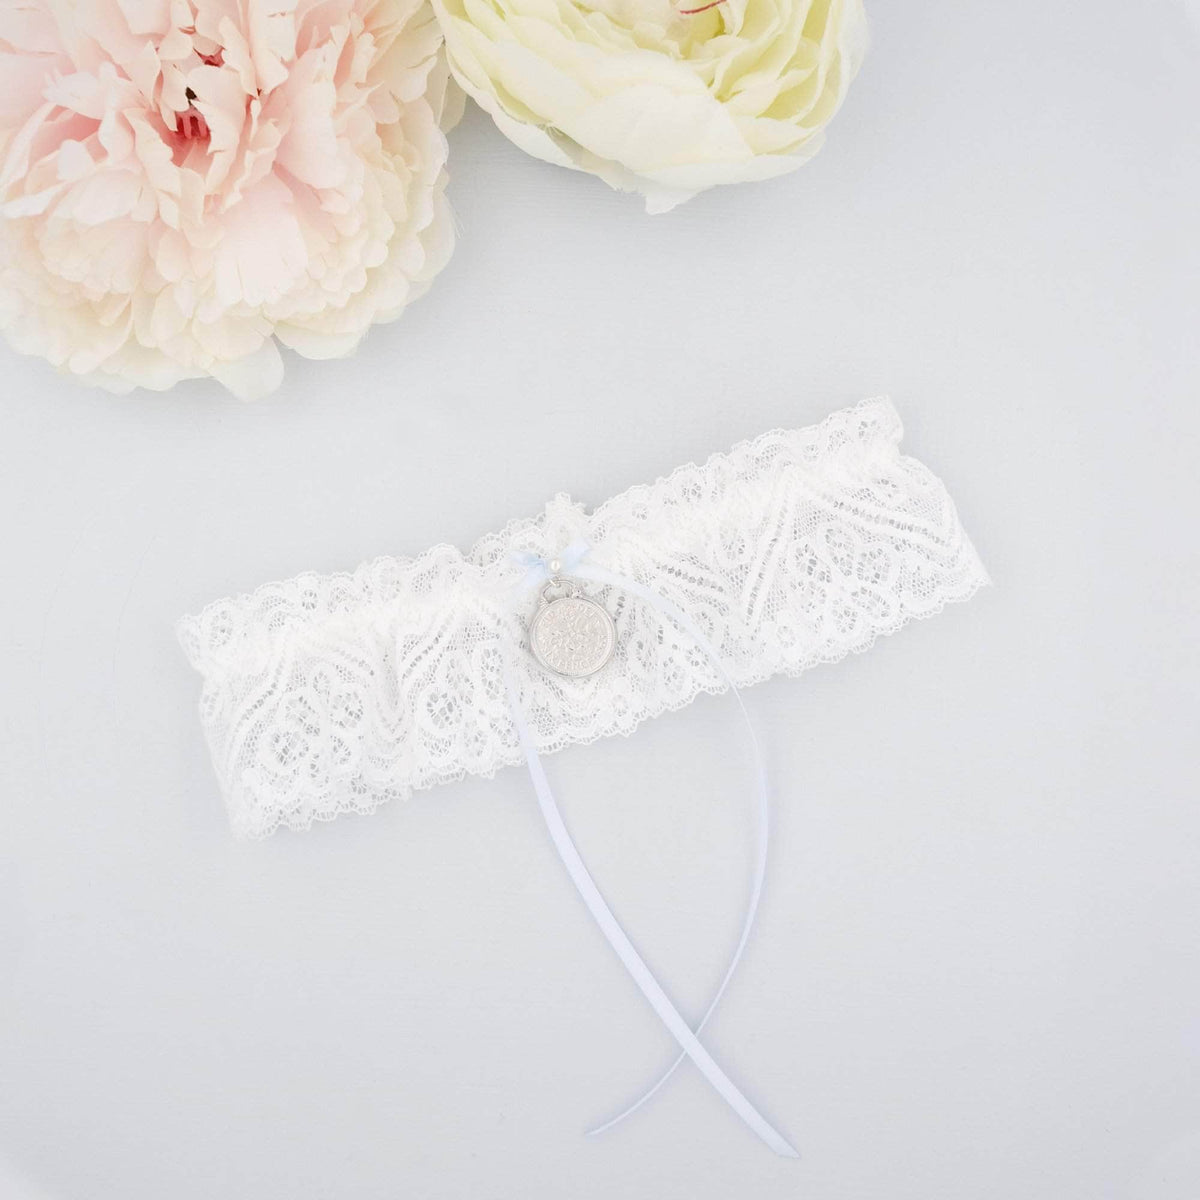 Wedding Garter Sixpence pendant lace wedding garter - 'Sixpence'